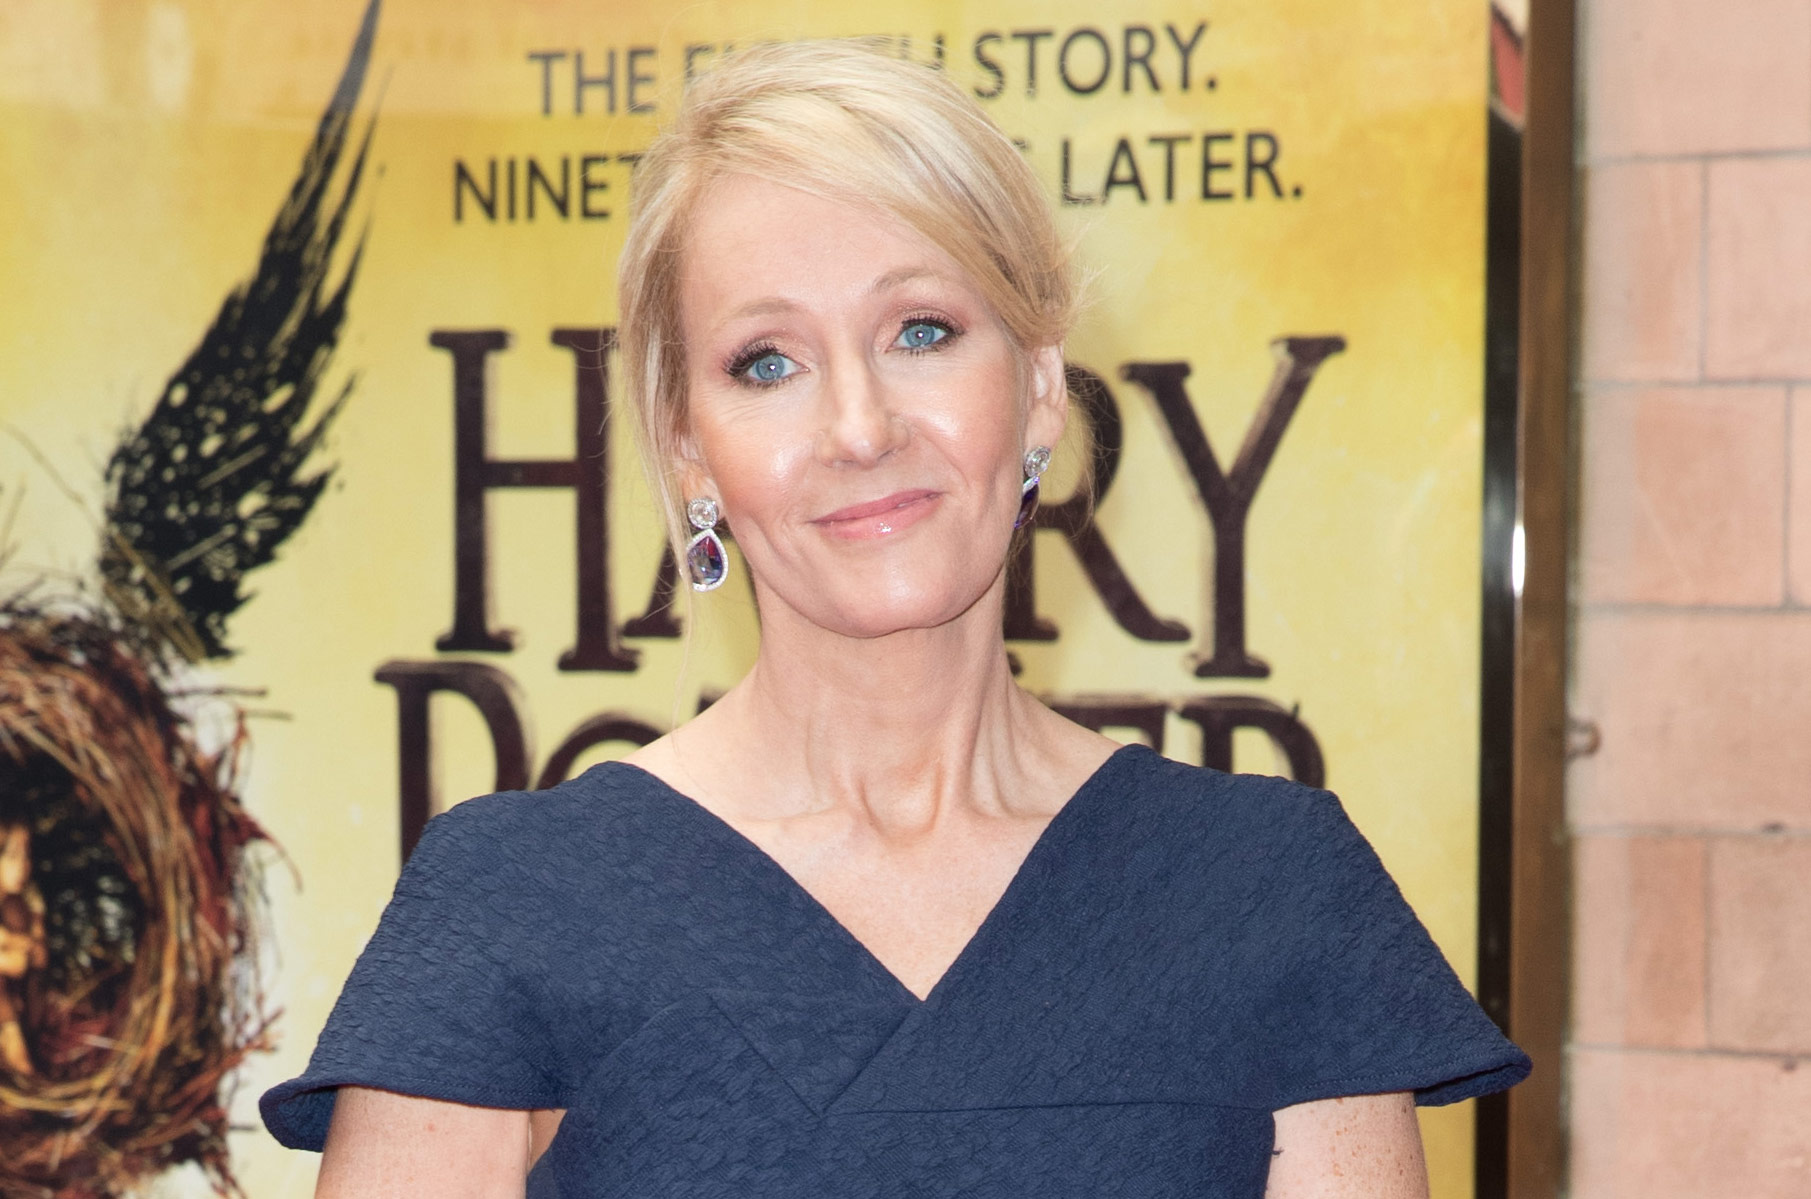 J. K. Rowling received a cake shaped like King's Cross station for her birthday and it's as awesome as it sounds